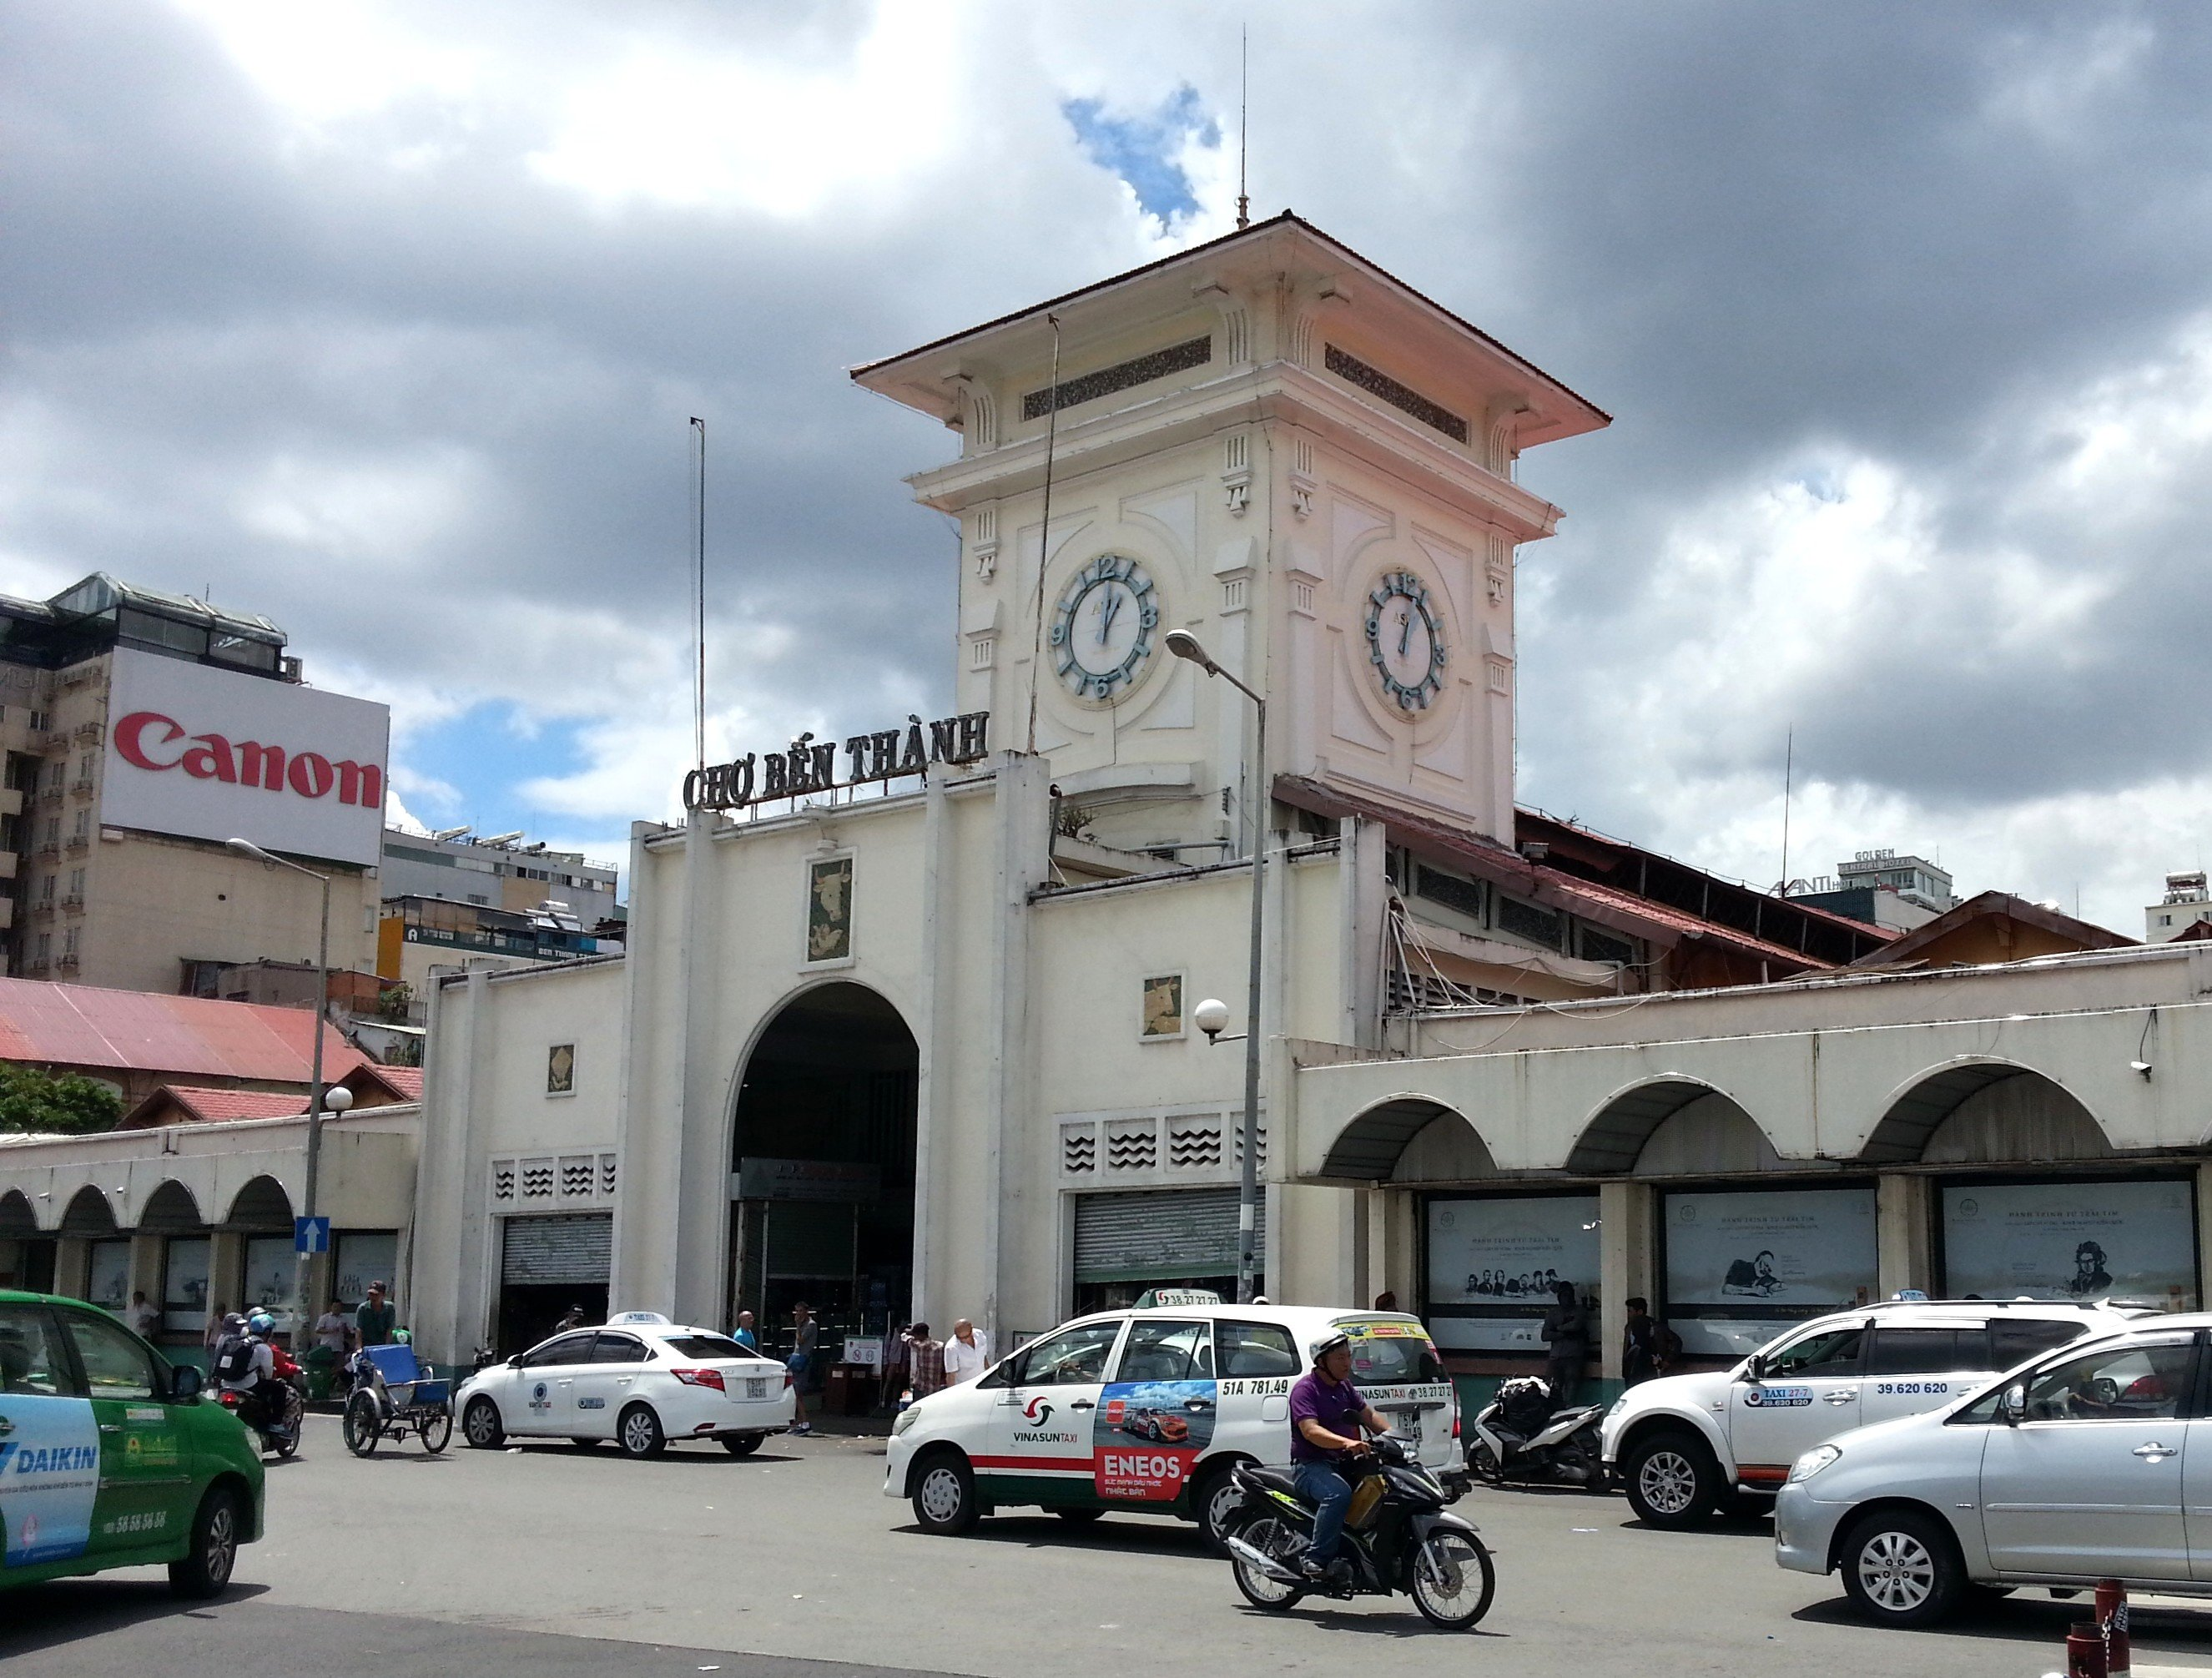 South Gate to Ben Thanh Market